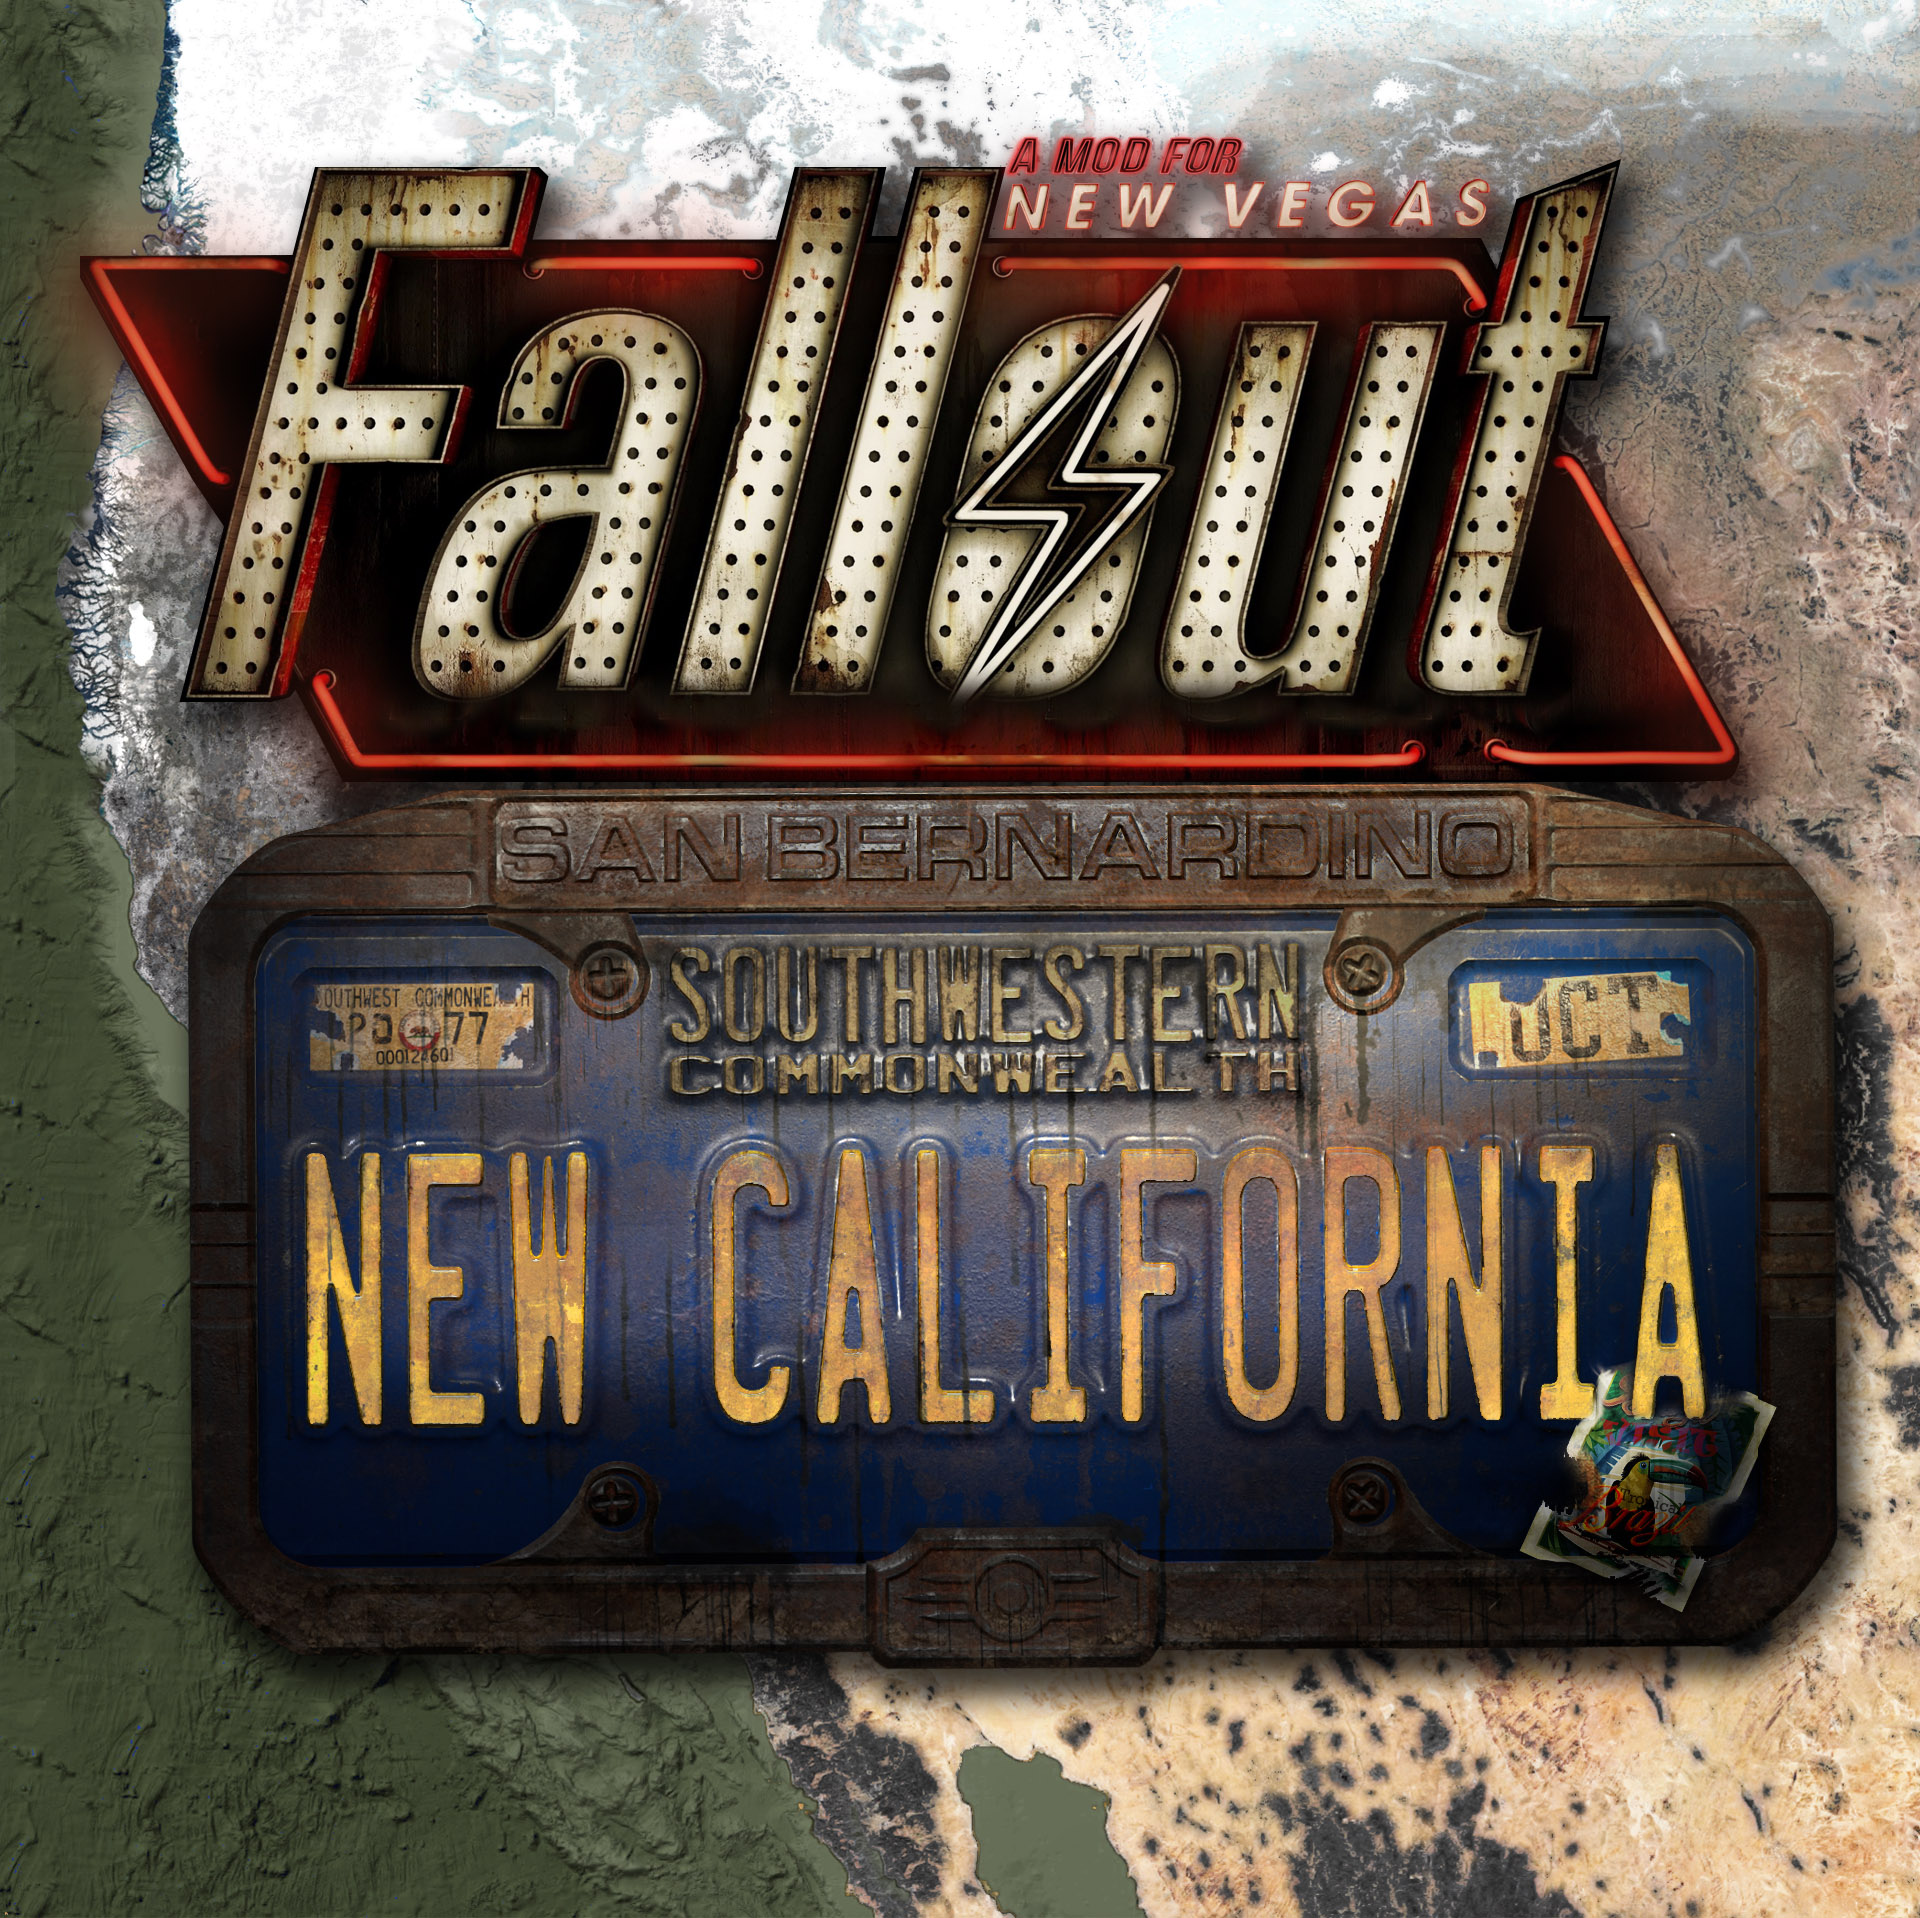 Fallout: New California a Mod for New Vegas